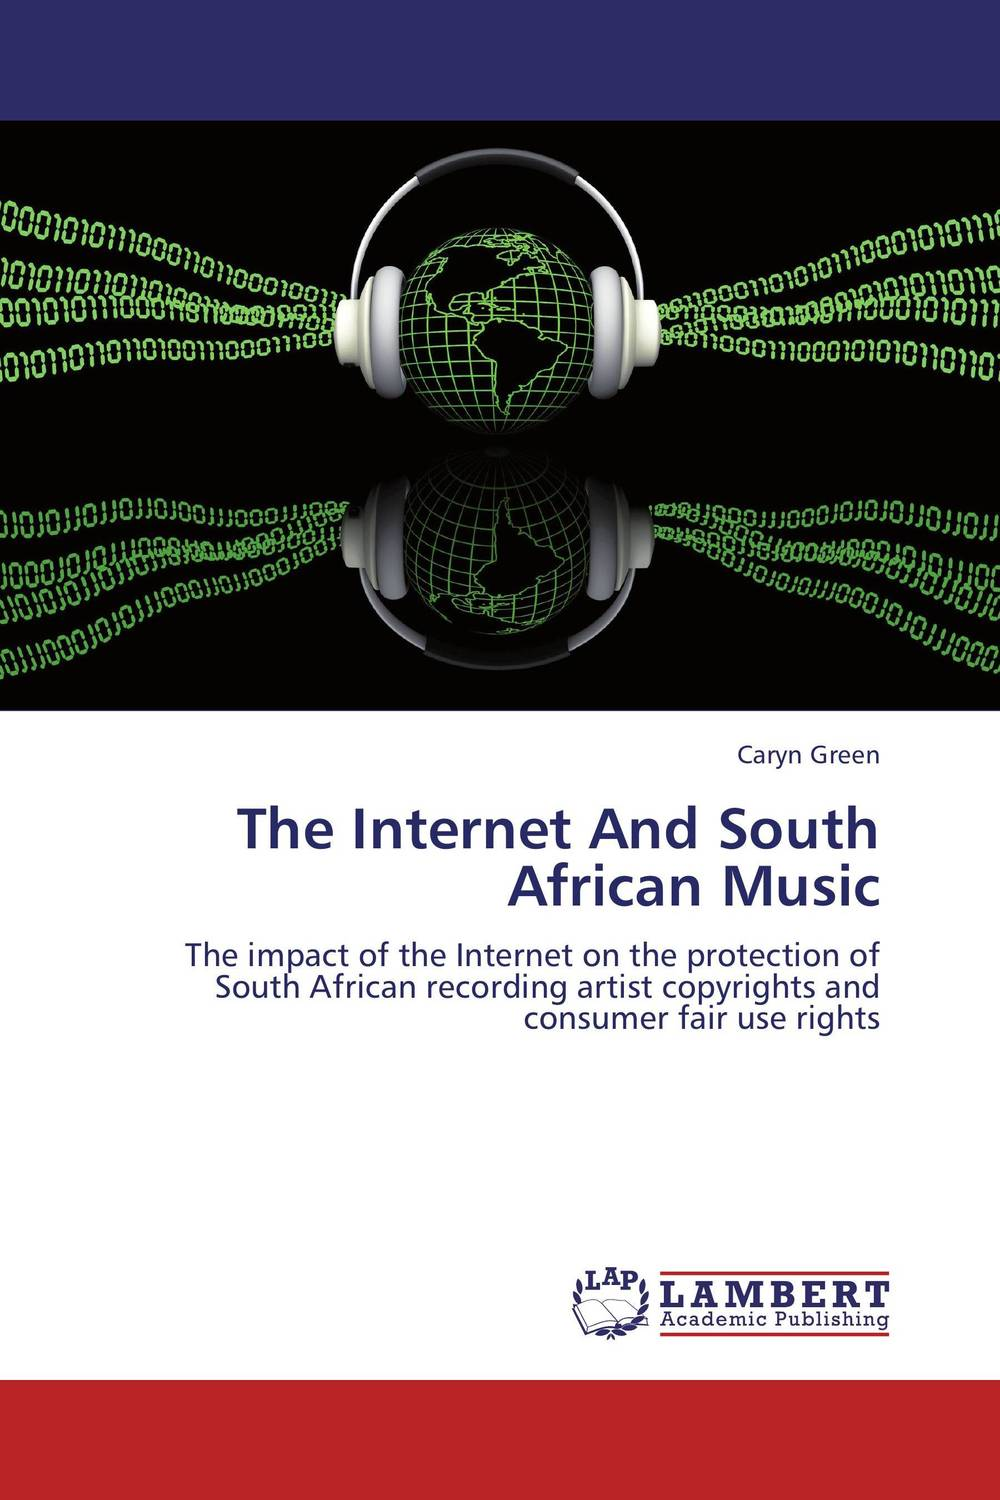 The Internet And South African Music